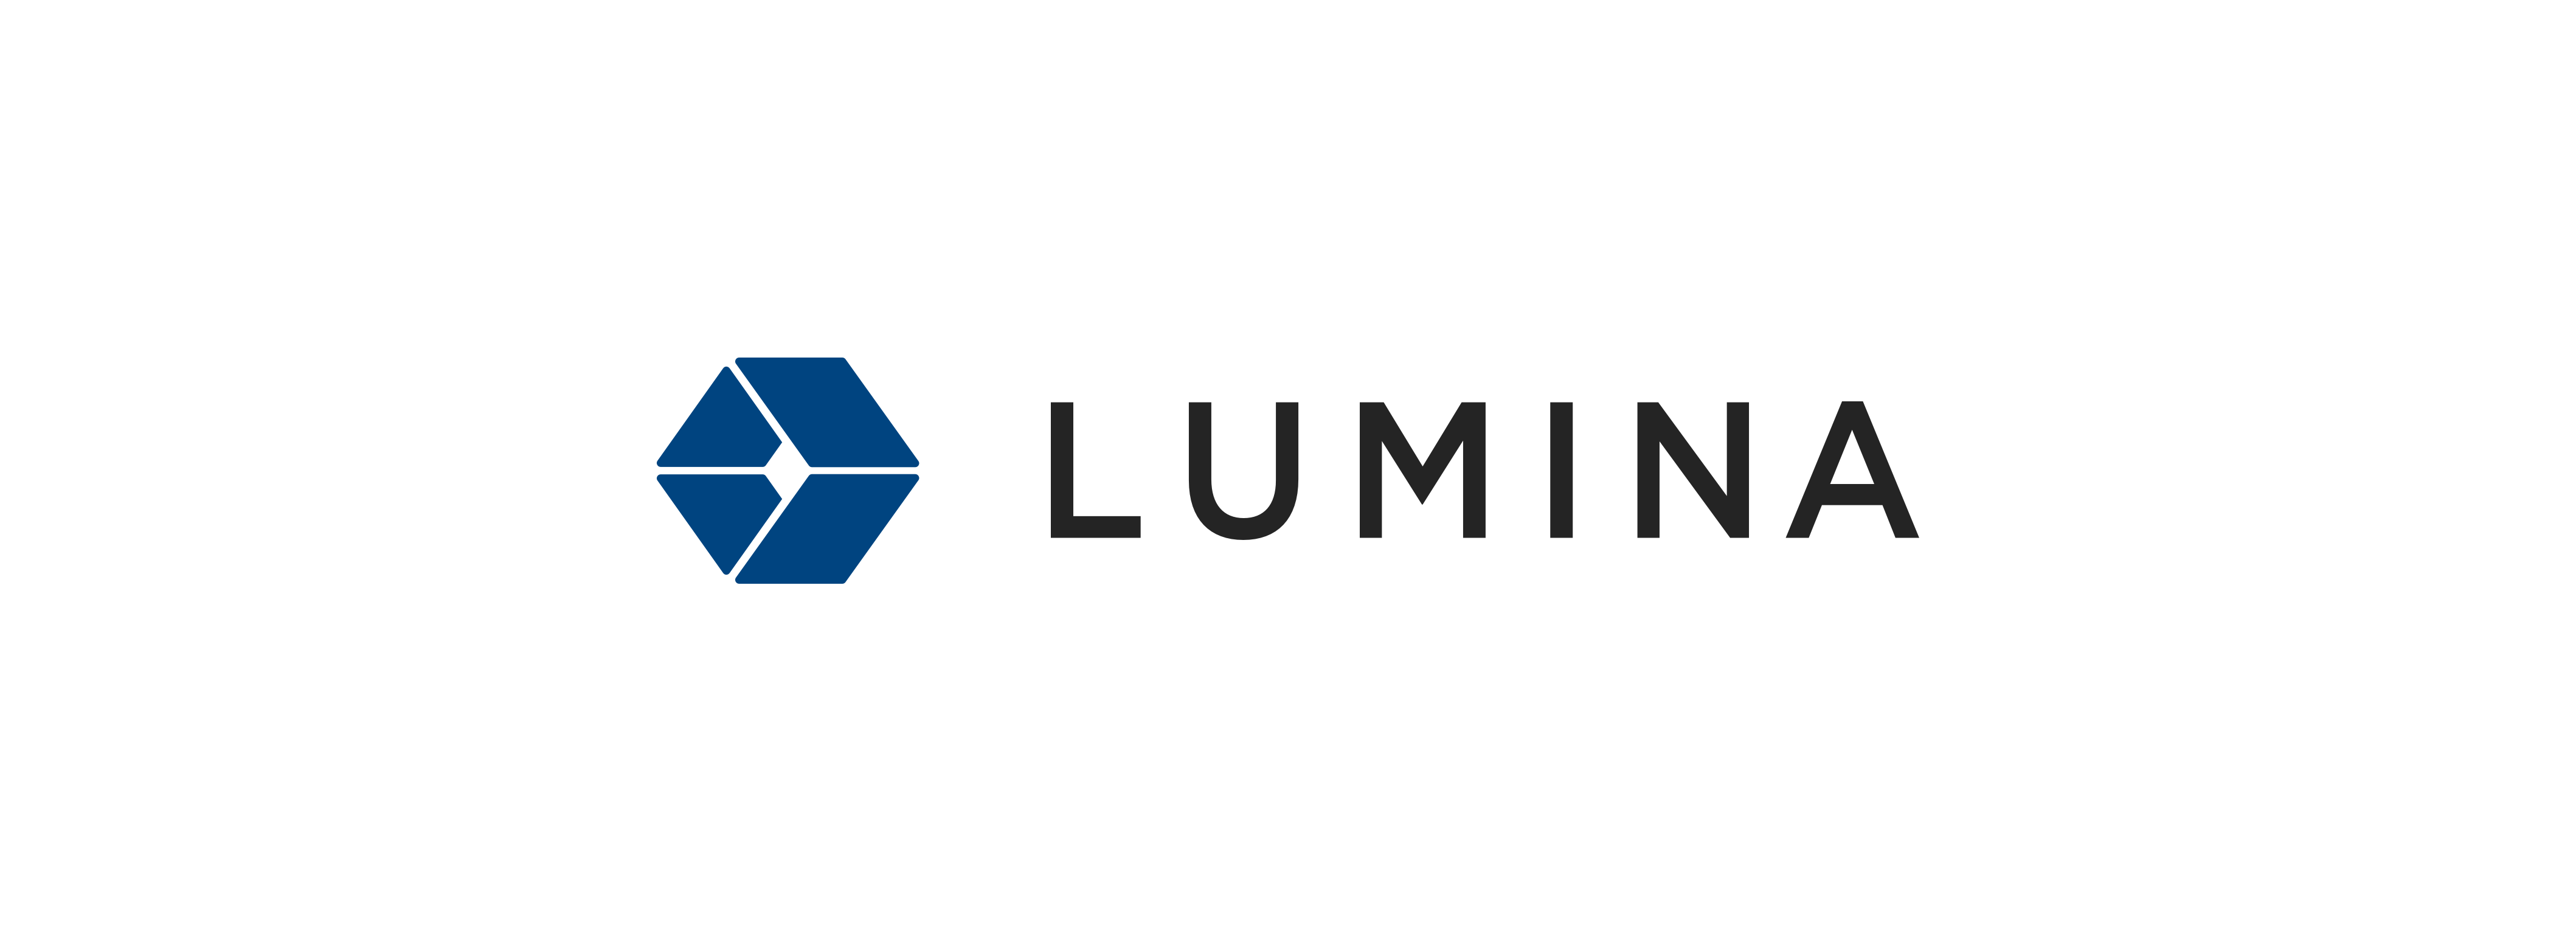 lumina-logo-horizontal-blue.png